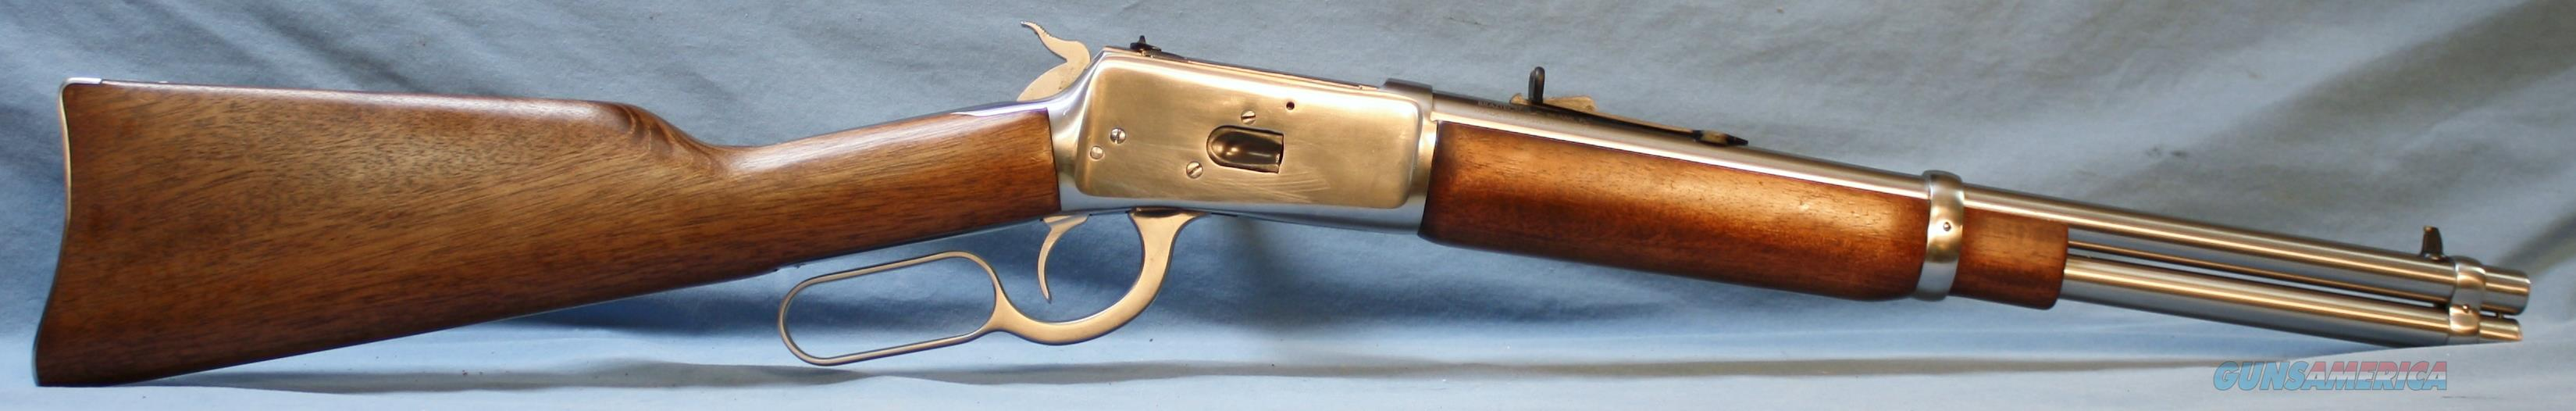 Rossi Model 92 Trapper Stainless Steel Lever Action Carbine 45 Colt Free Shipping!!  Guns > Rifles > Rossi Rifles > Cowboy